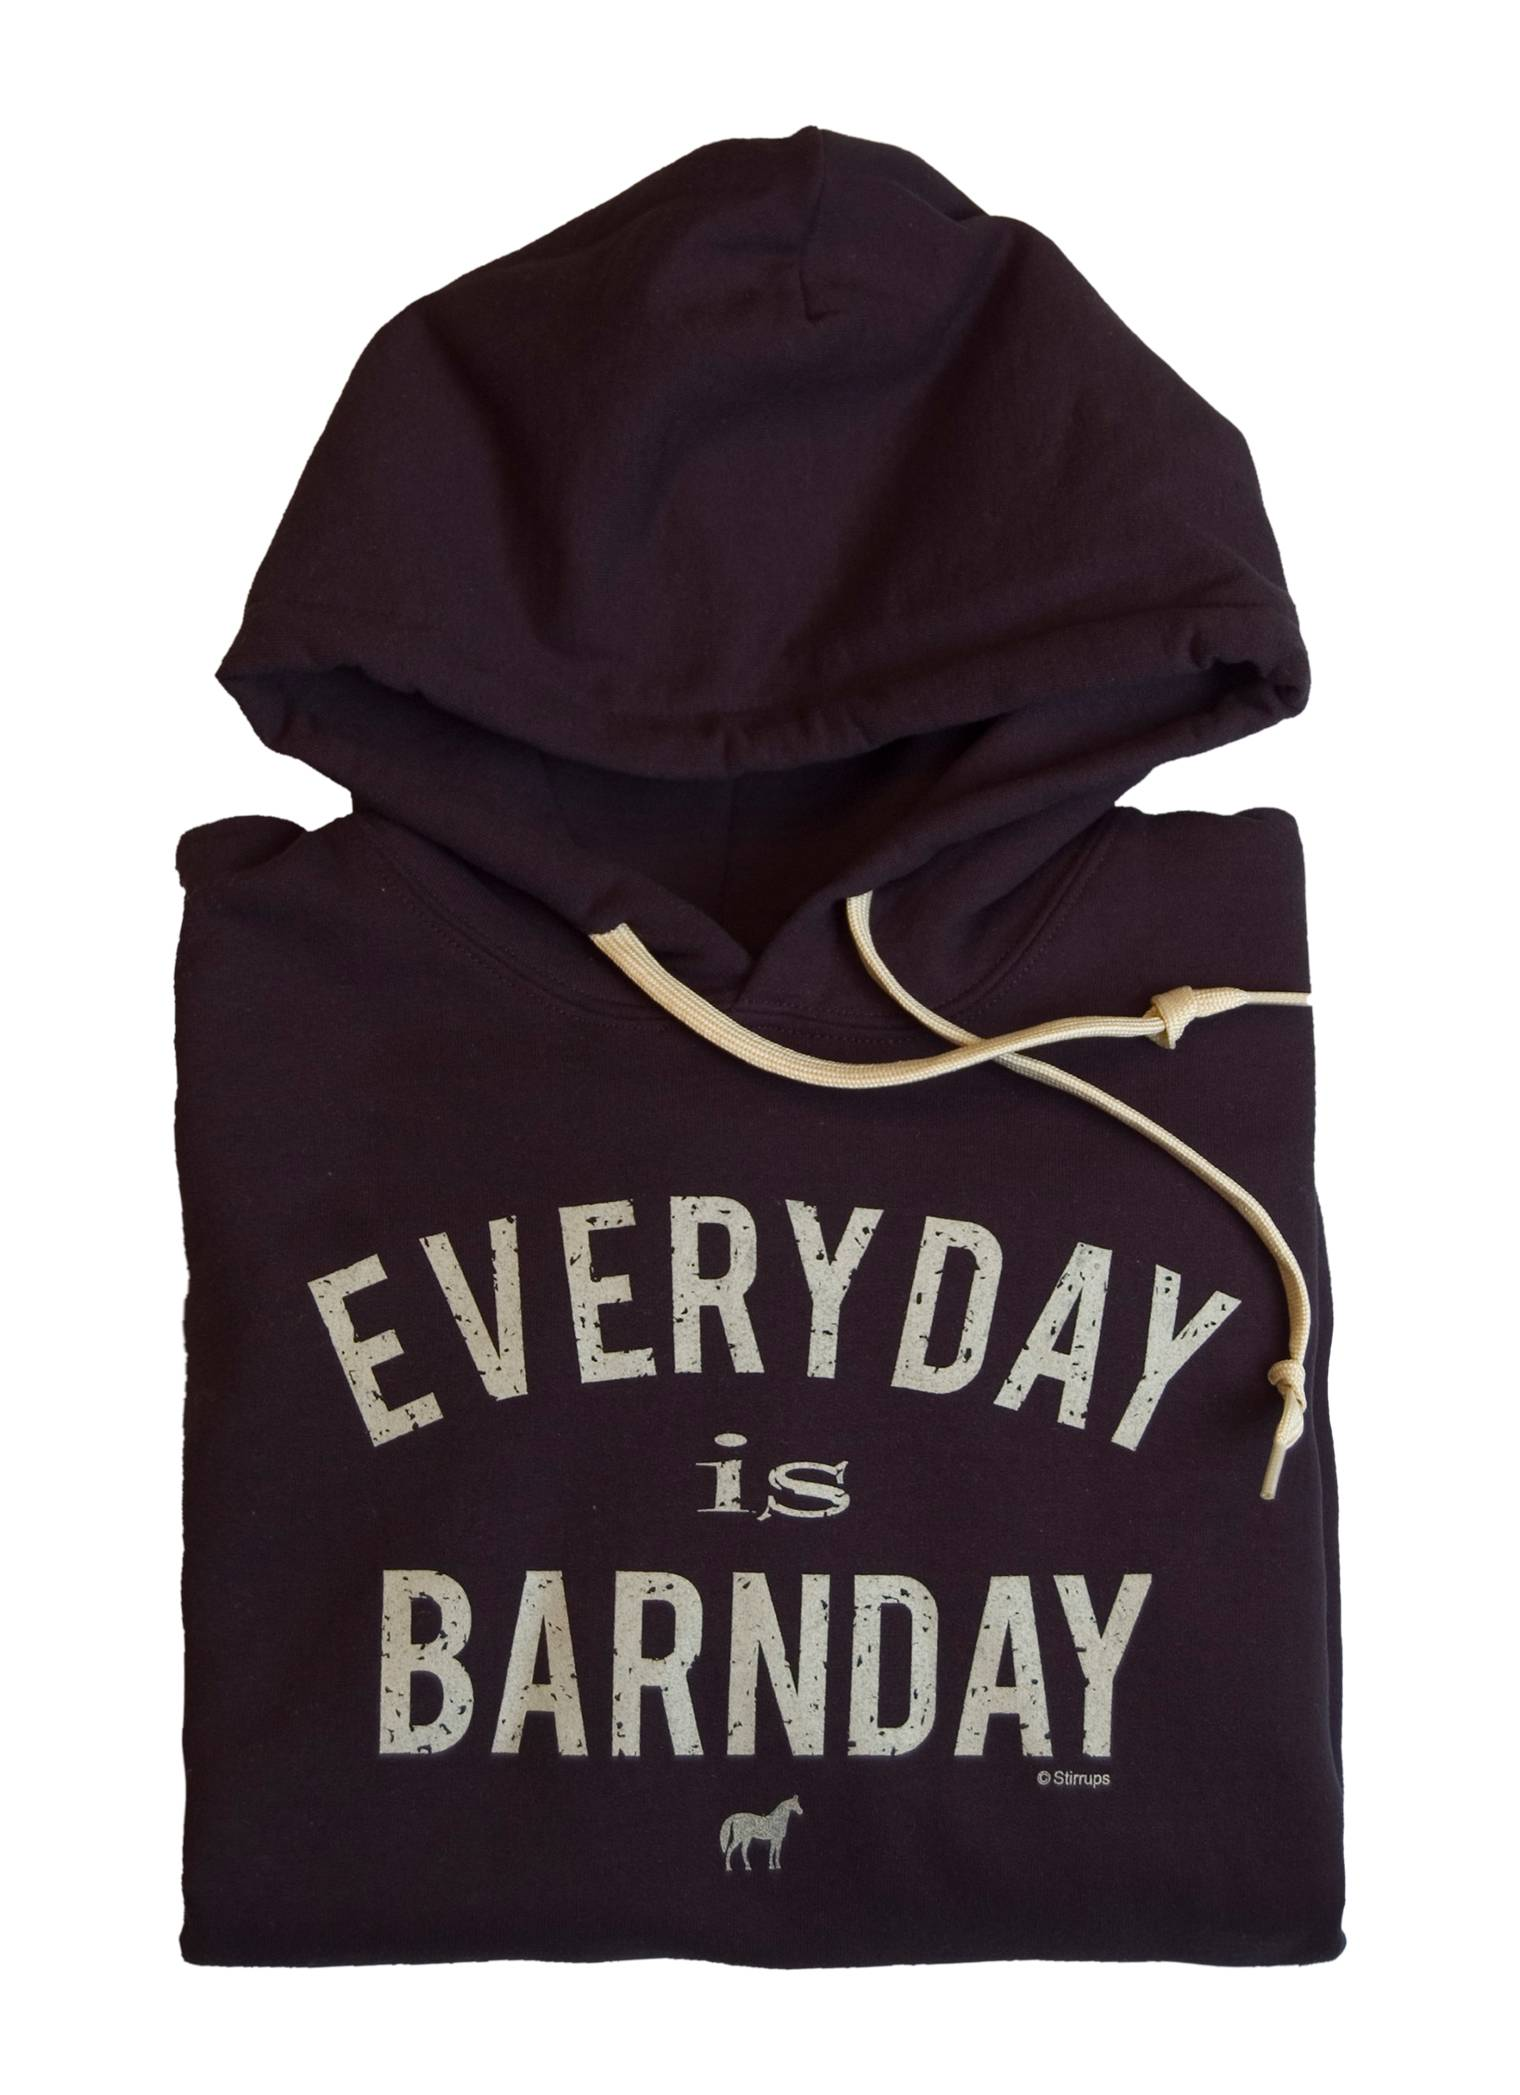 Stirrups Everyday Is Barnday Hooded Sweatshirt - Ladies